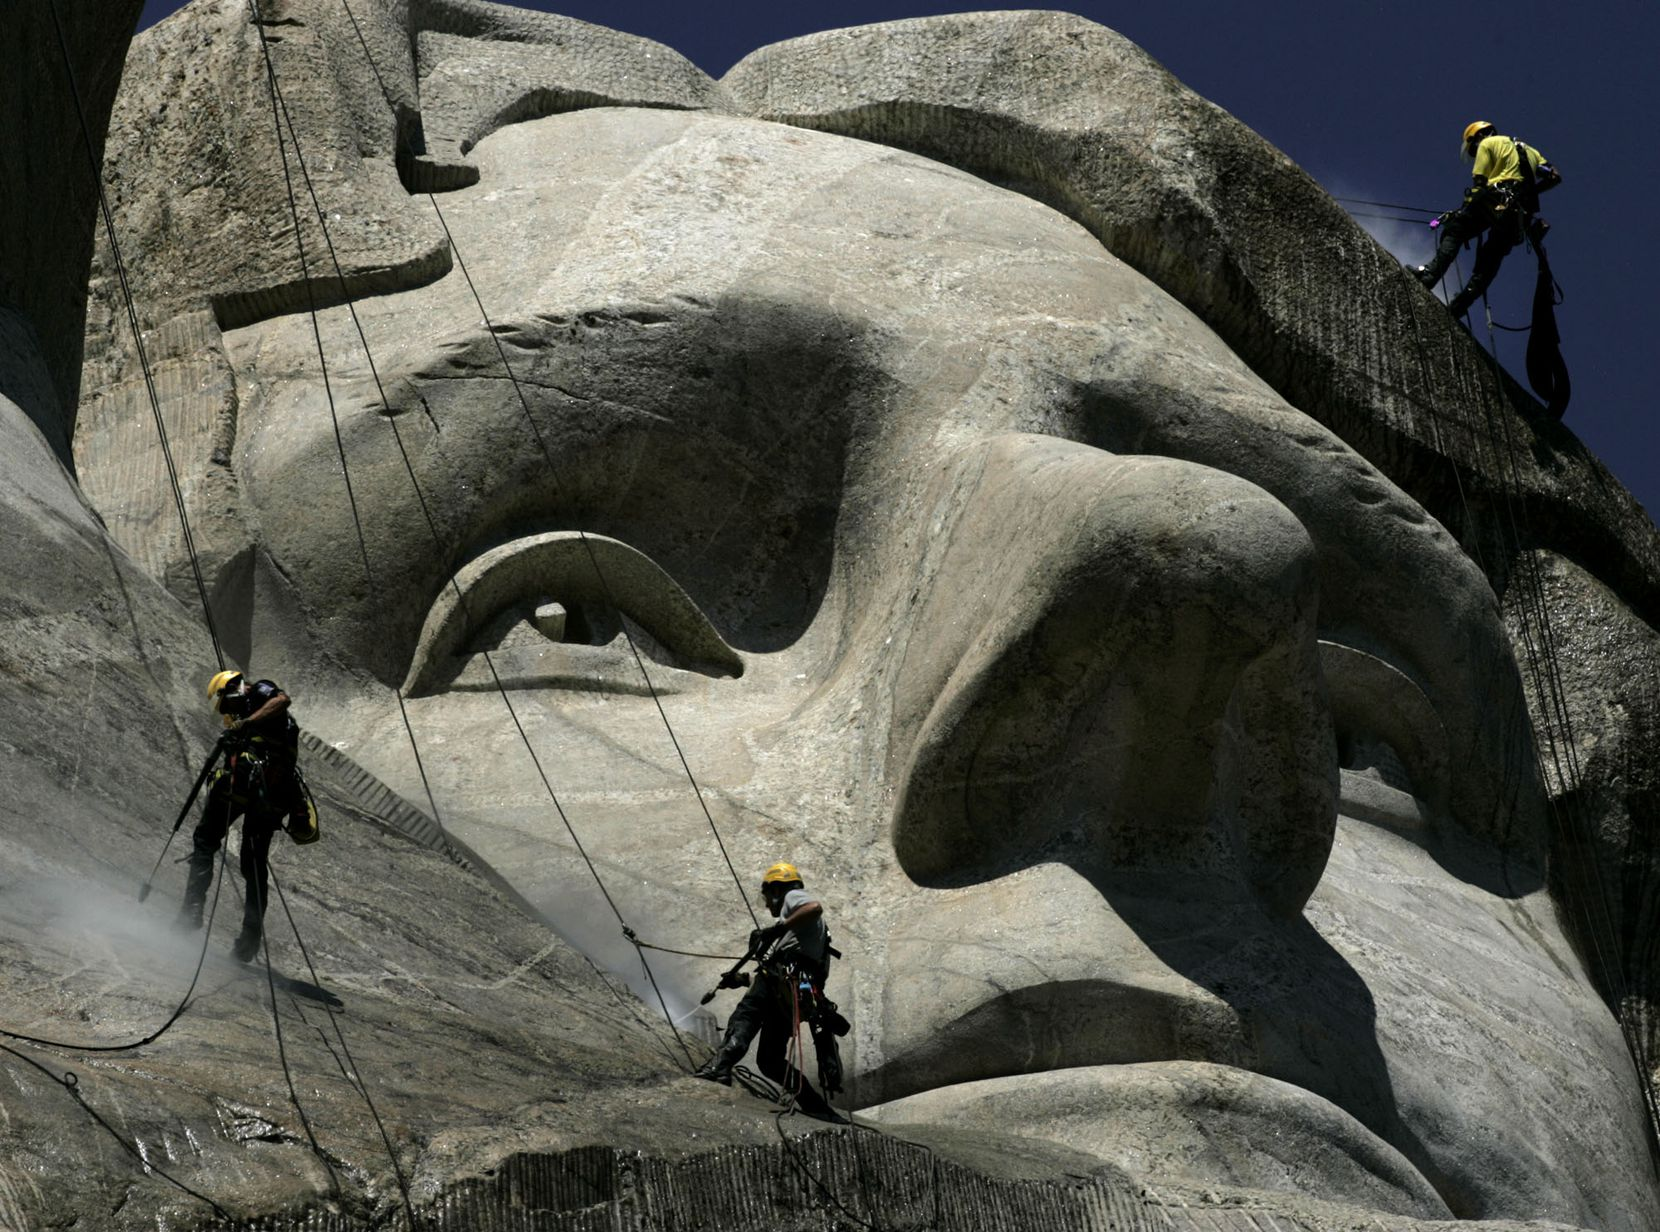 German workers Gerhard Buchar, right, and Winfried Hagenau, left, along with National Park Service employee Darin Oestman use pressure washers to clean around the face of Thomas Jefferson July 22, 2005, at Mount Rushmore National Memorial in South Dakota. The workers are taking part in a project to clean dirt and a fungus called lichen from the monument. The granite sculptures hadn't been washed since they were completed 65 years ago by sculptor Gutzon Borglum.